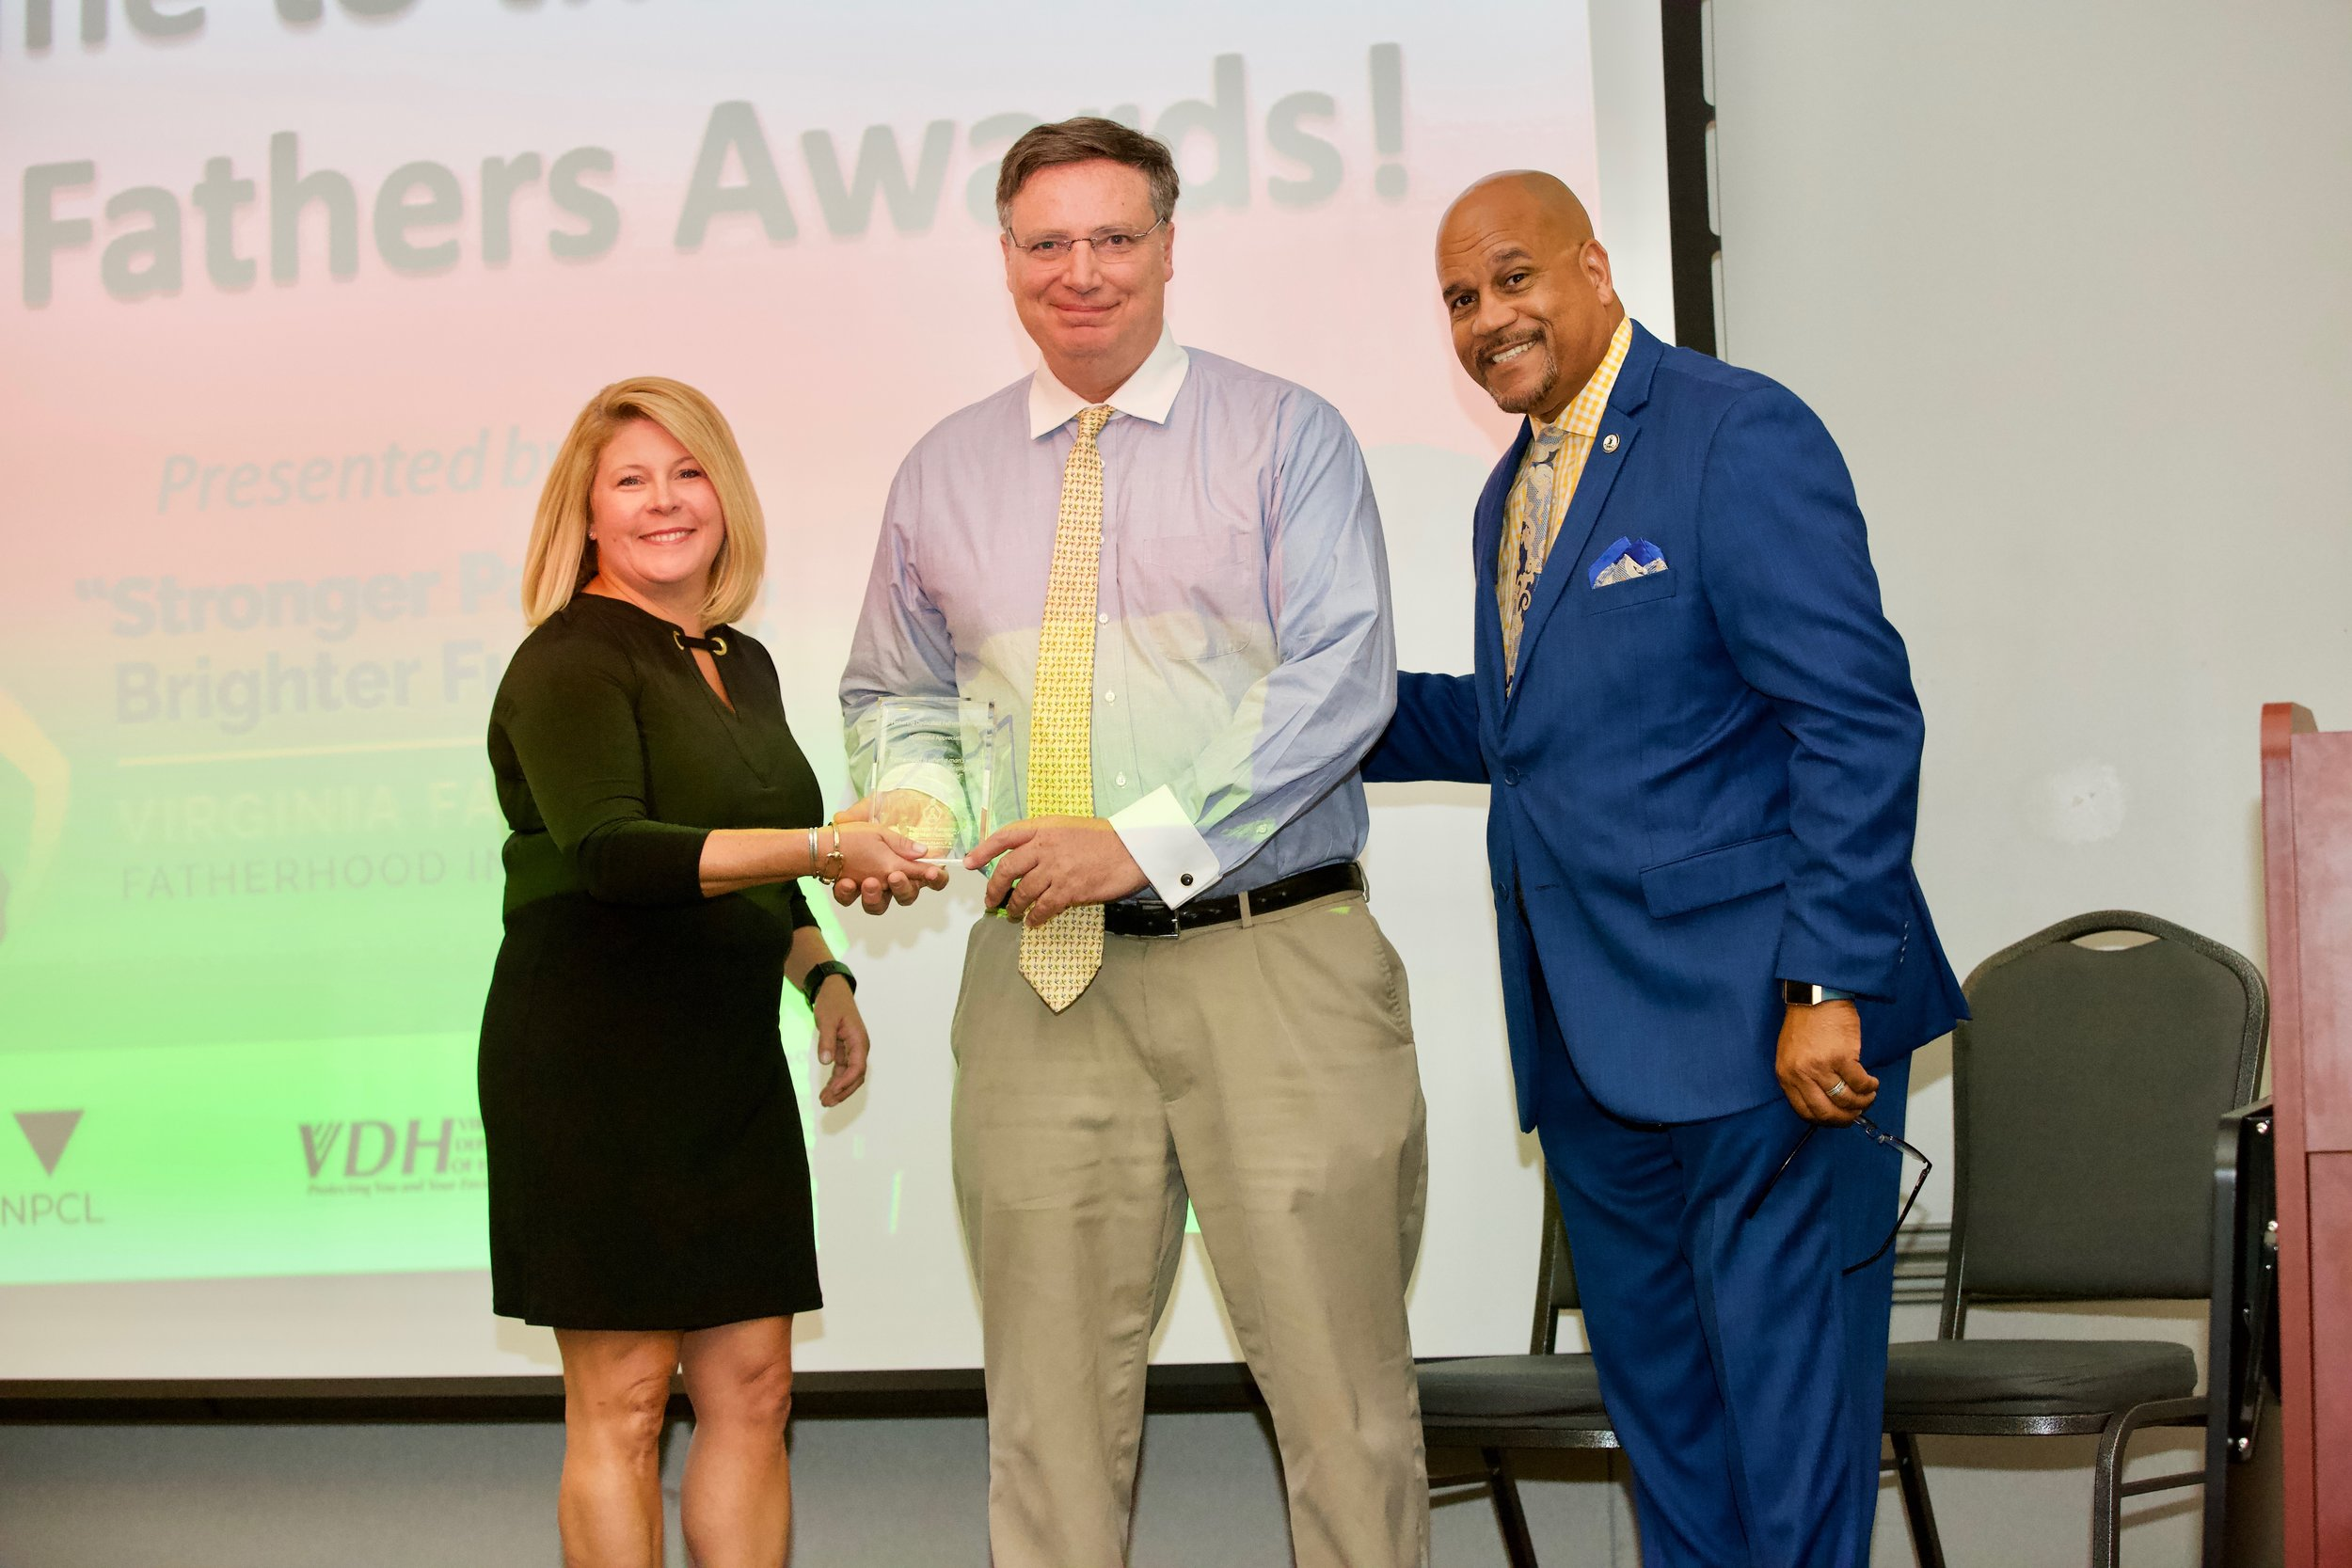 Stronger Parents, Brighter Futures Program  within the Virginia Family and Fatherhood Initiative, presents Favorite Father Award to a noteworthy Virginia Dad.